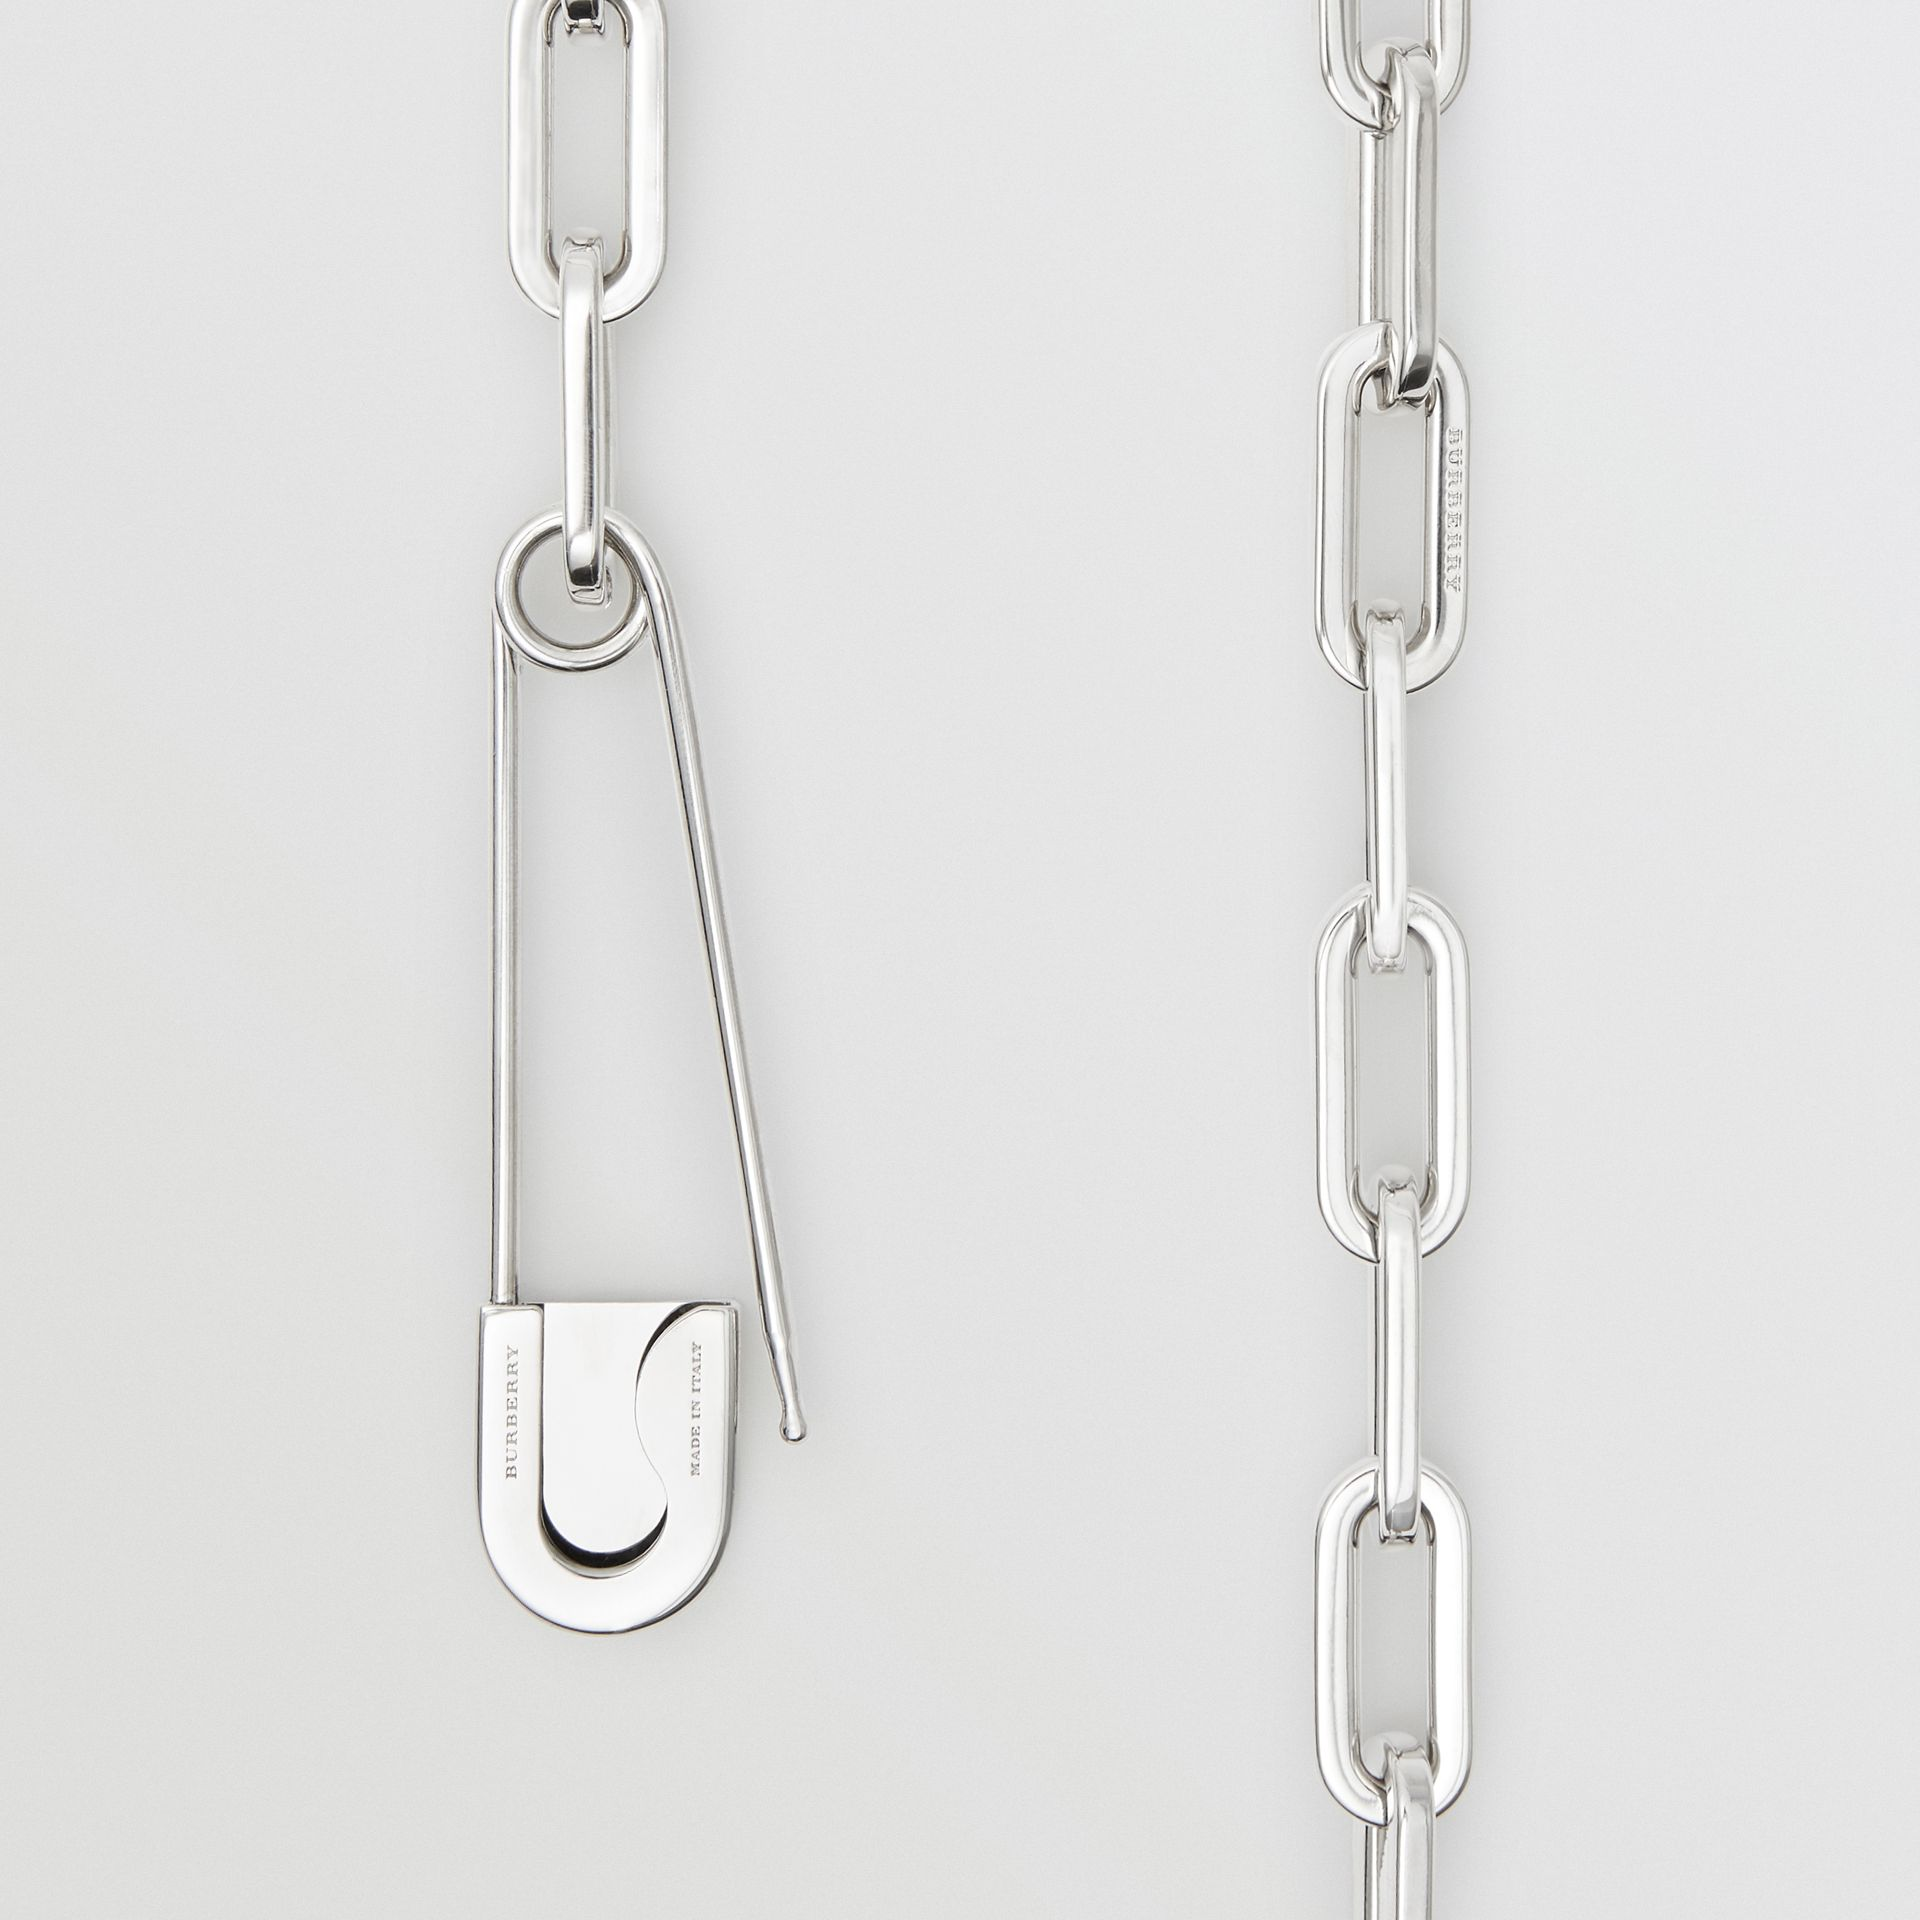 Kilt Pin Palladium-plated Long Link Drop Necklace in Palladio - Women | Burberry United Kingdom - gallery image 1